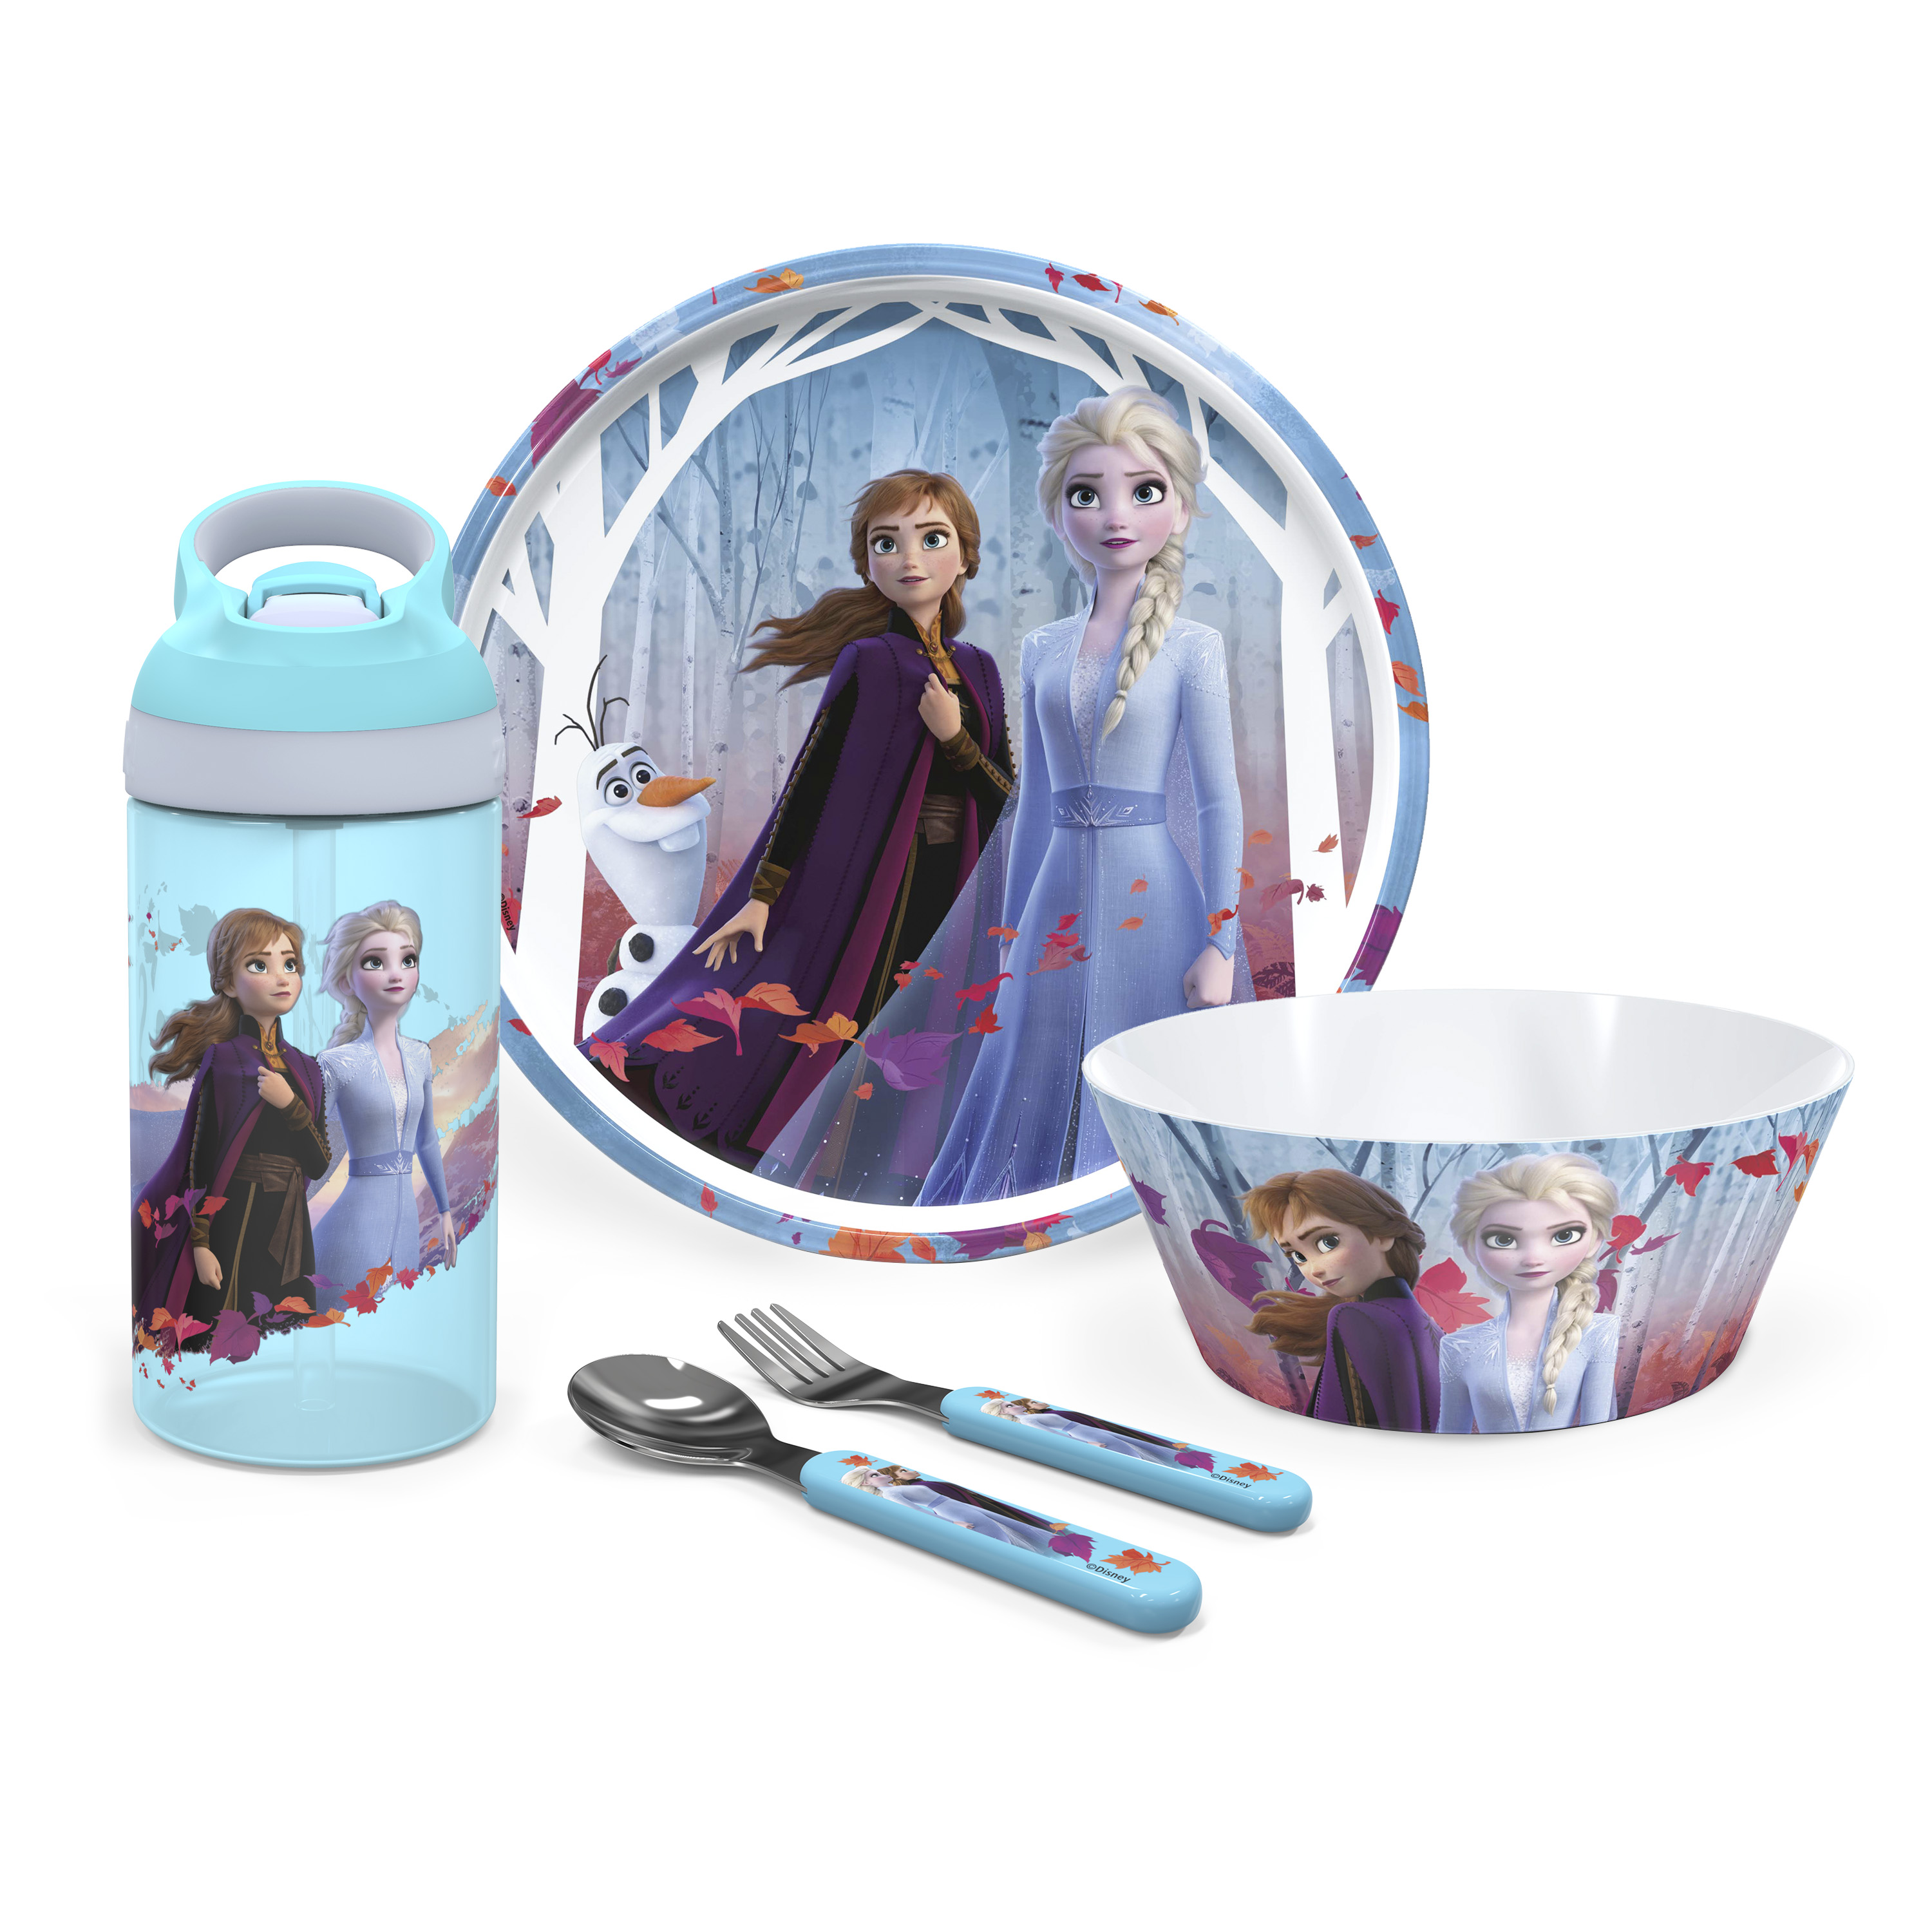 Disney Frozen 2 Movie Dinnerware Set, Anna and Elsa, 5-piece set slideshow image 1